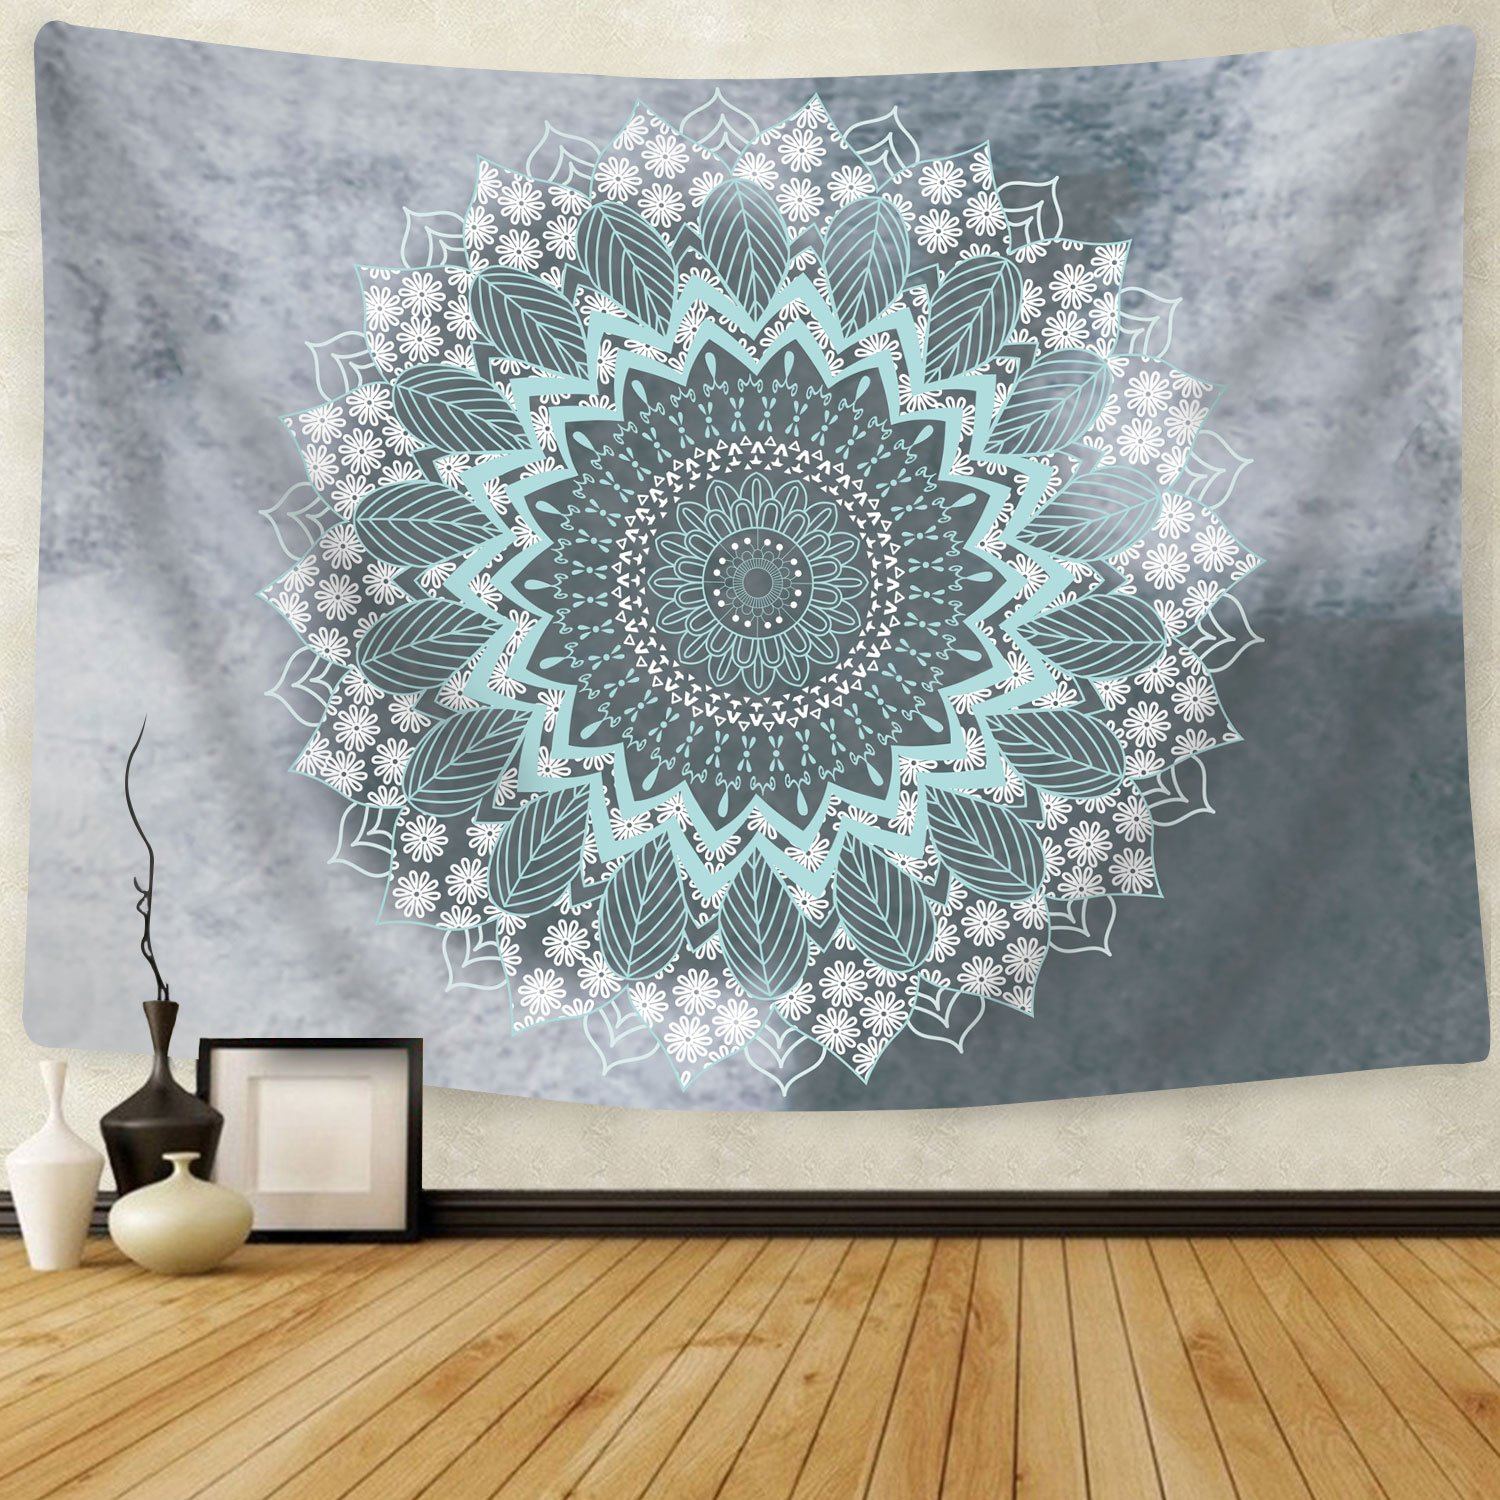 bedroom tapestry. Tapestry Mandala Hippie Bohemian Tapestries Wall Hanging Flower Psychedelic  Indian Dorm Decor for Living Room Bedroom 51 2 59 1 Amazon com